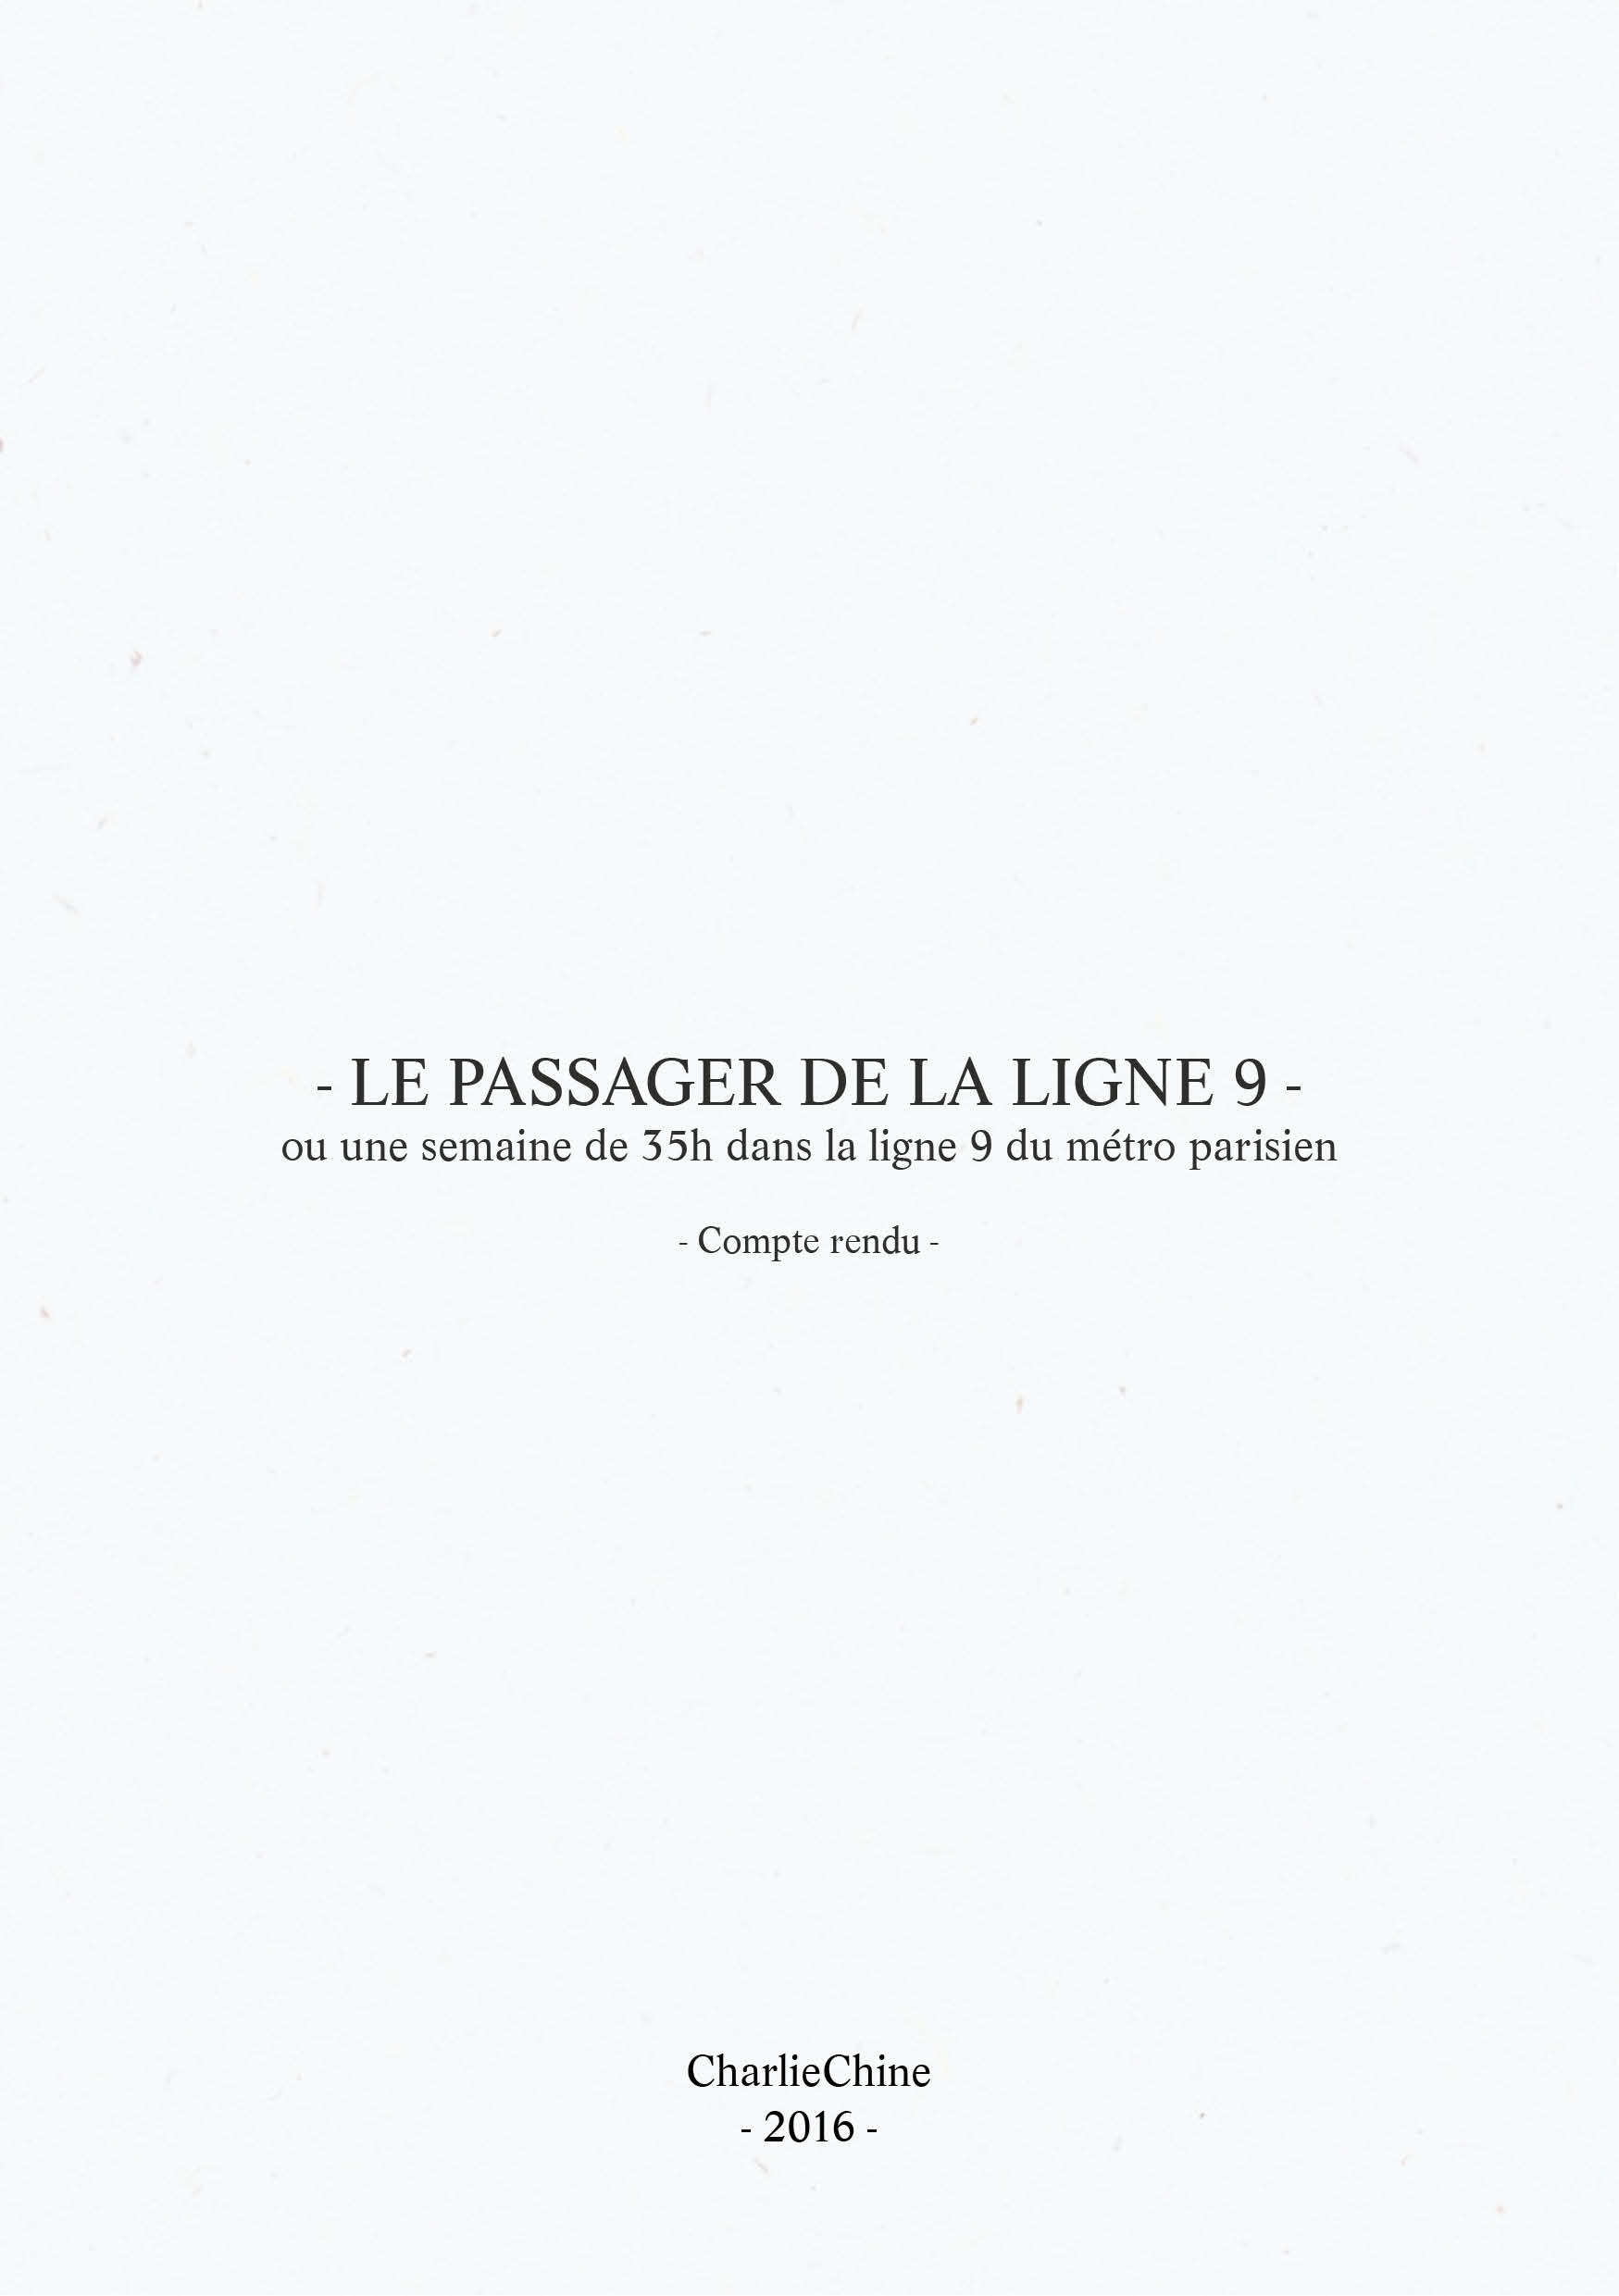 2016_LePassagerDeLaLigne9_Rapport©CharlieChine_web_planches